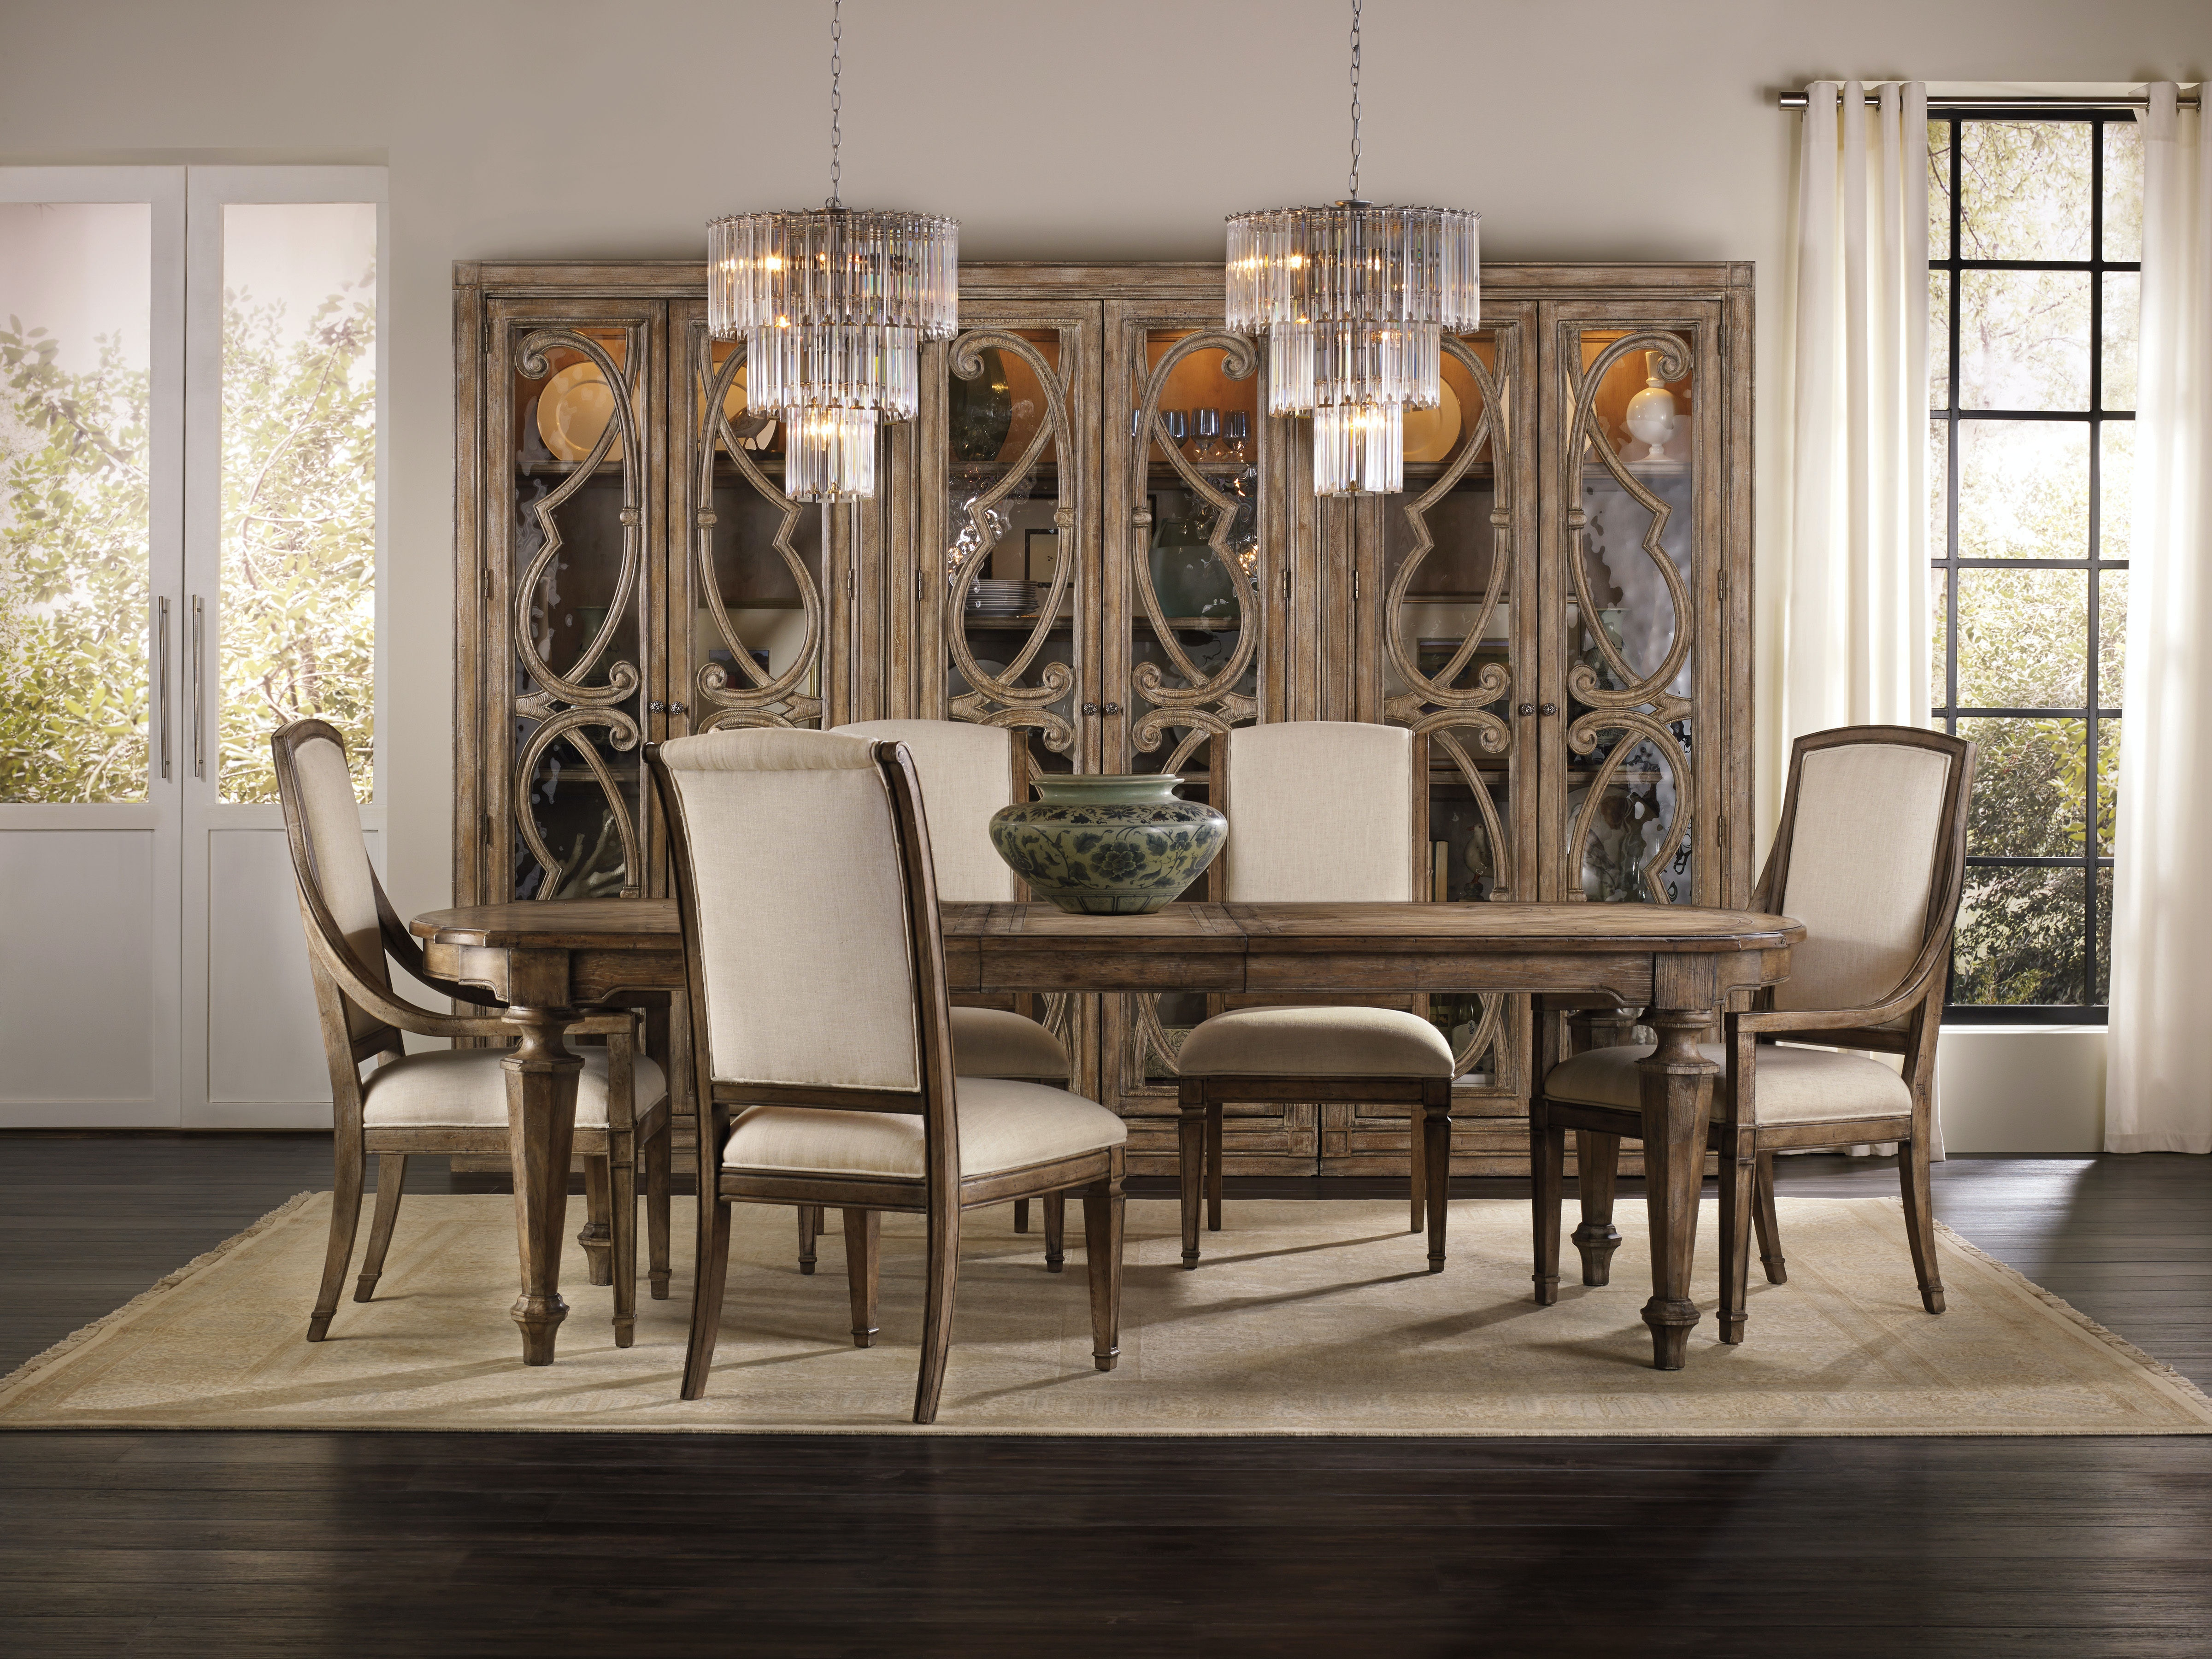 Hooker furniture solana rectangle dining table w 2 18in leaves hs529175200 from walter e